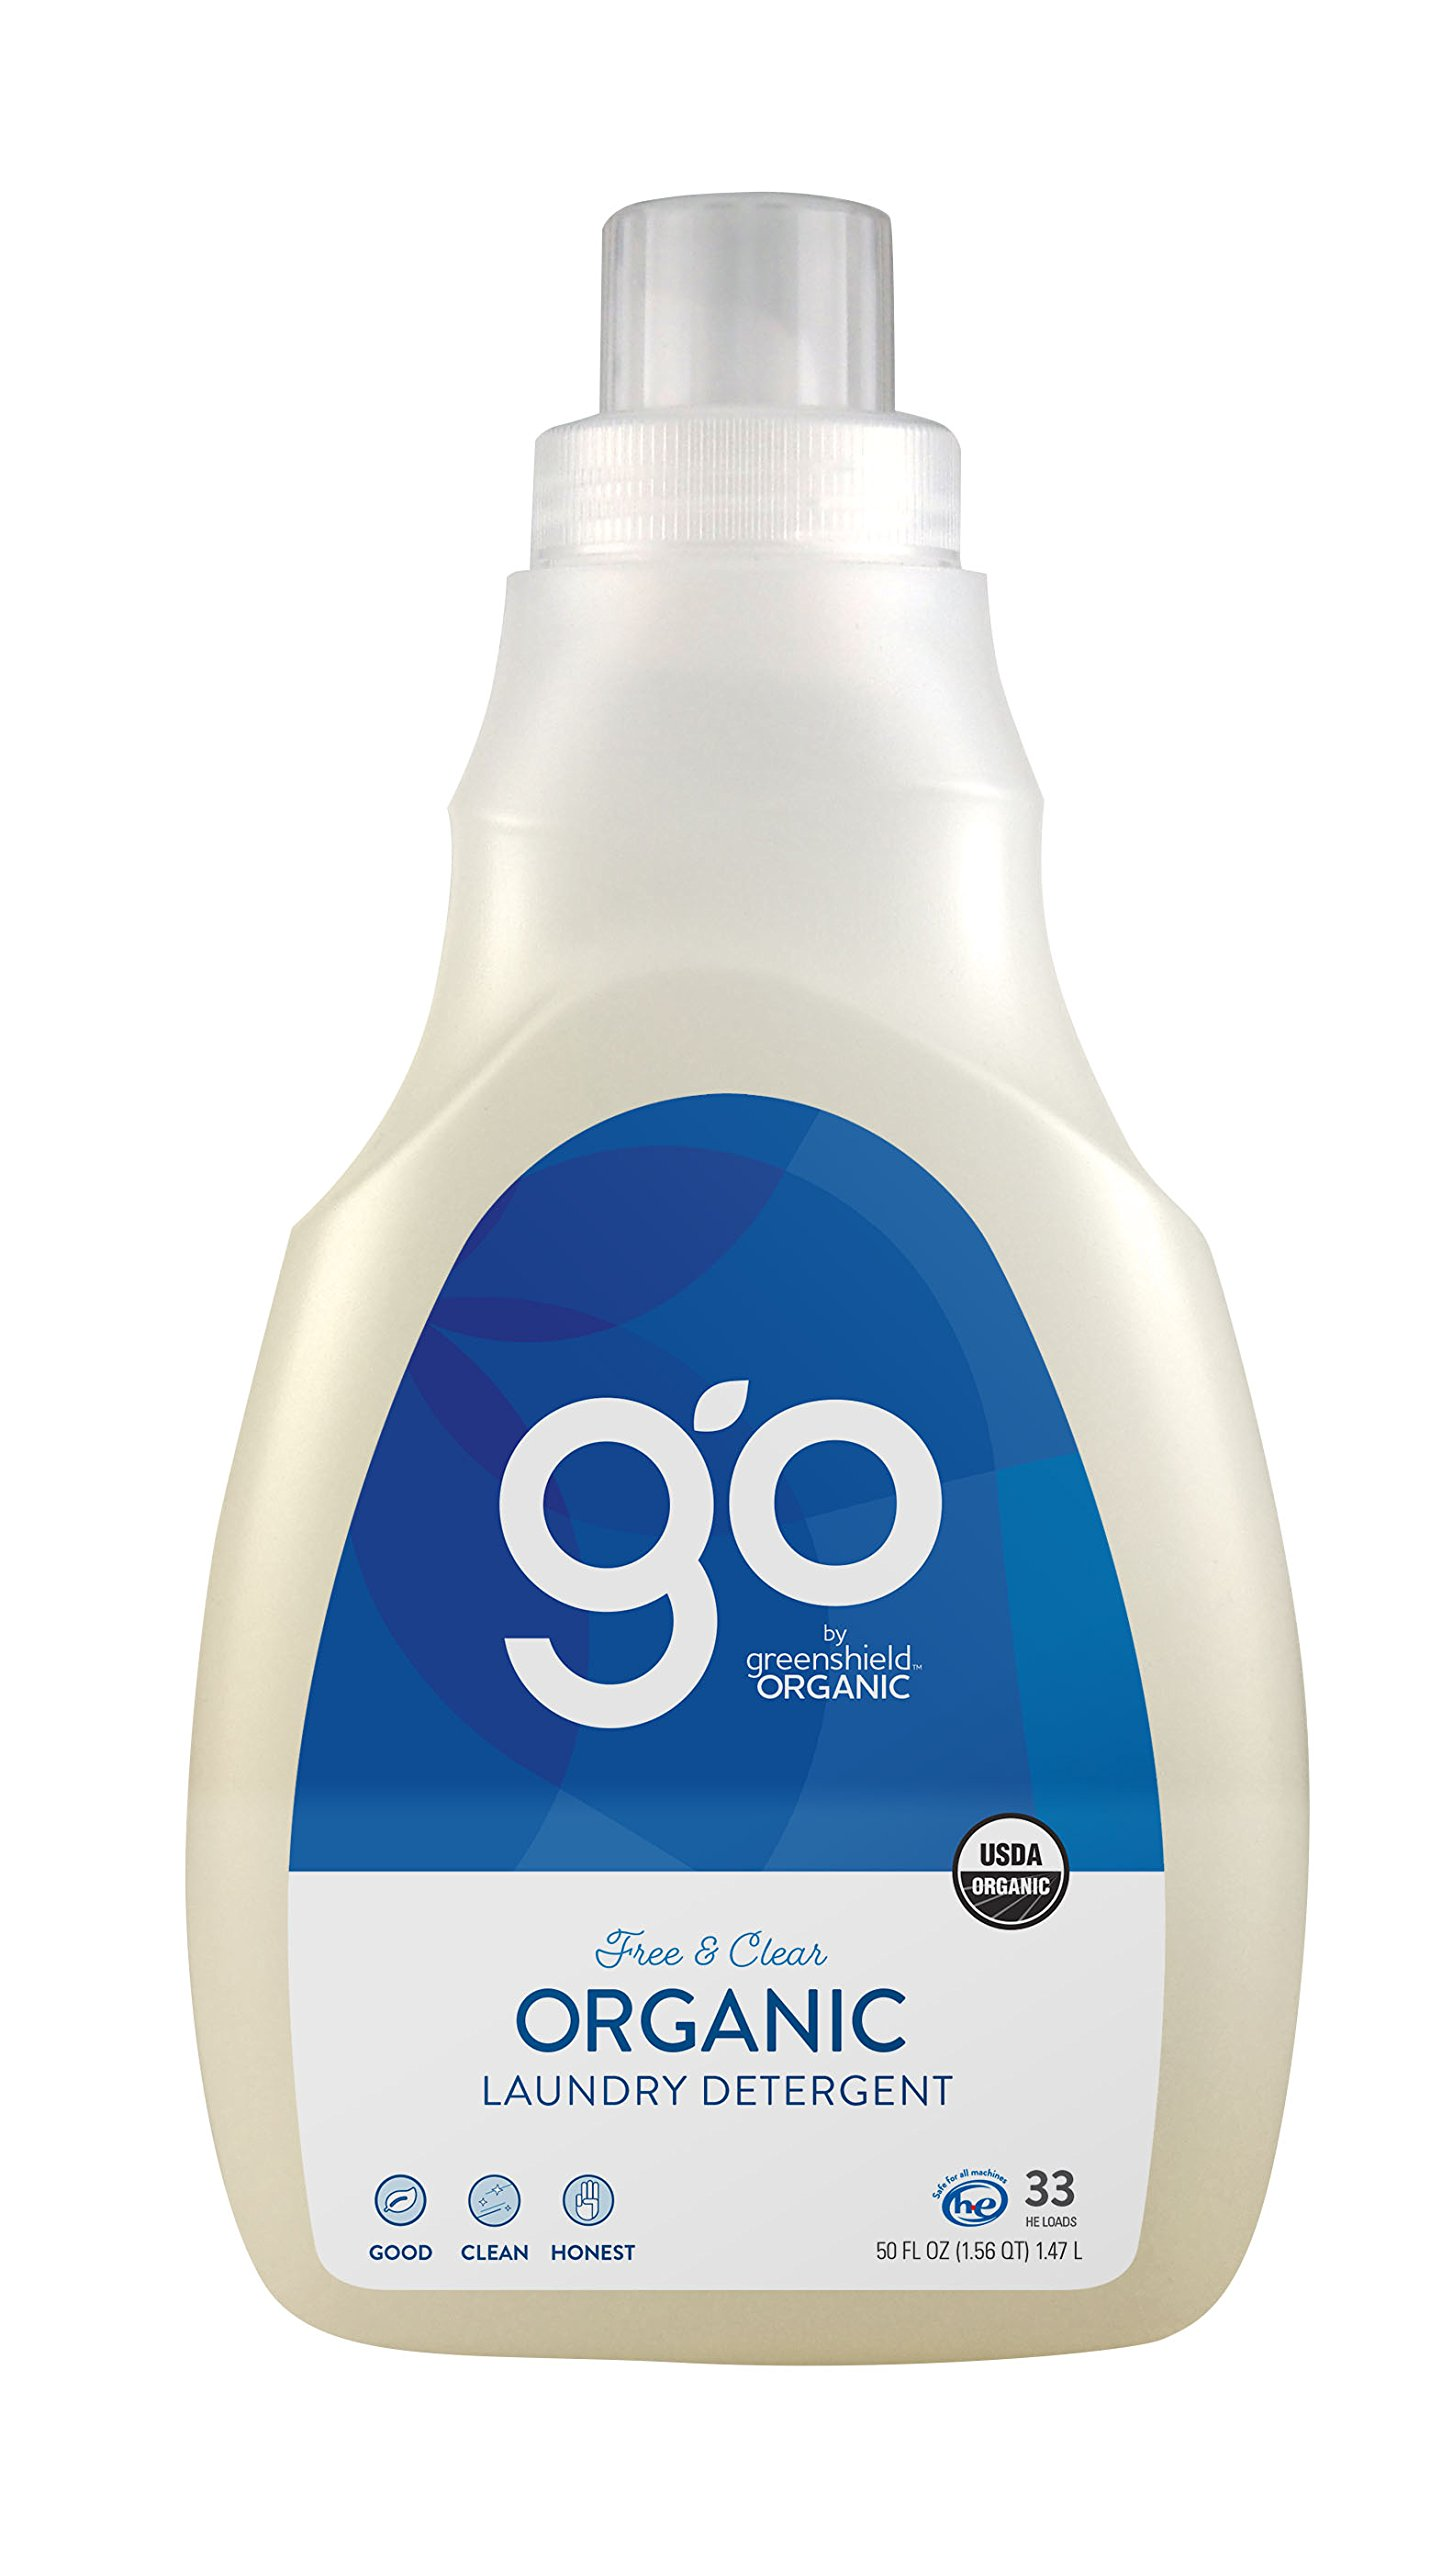 Greenshield Organic, Usda Organic Free and Clear Liquid Laundry Detergent, 50-Ounces (Pack of 4) by GreenShield Organic